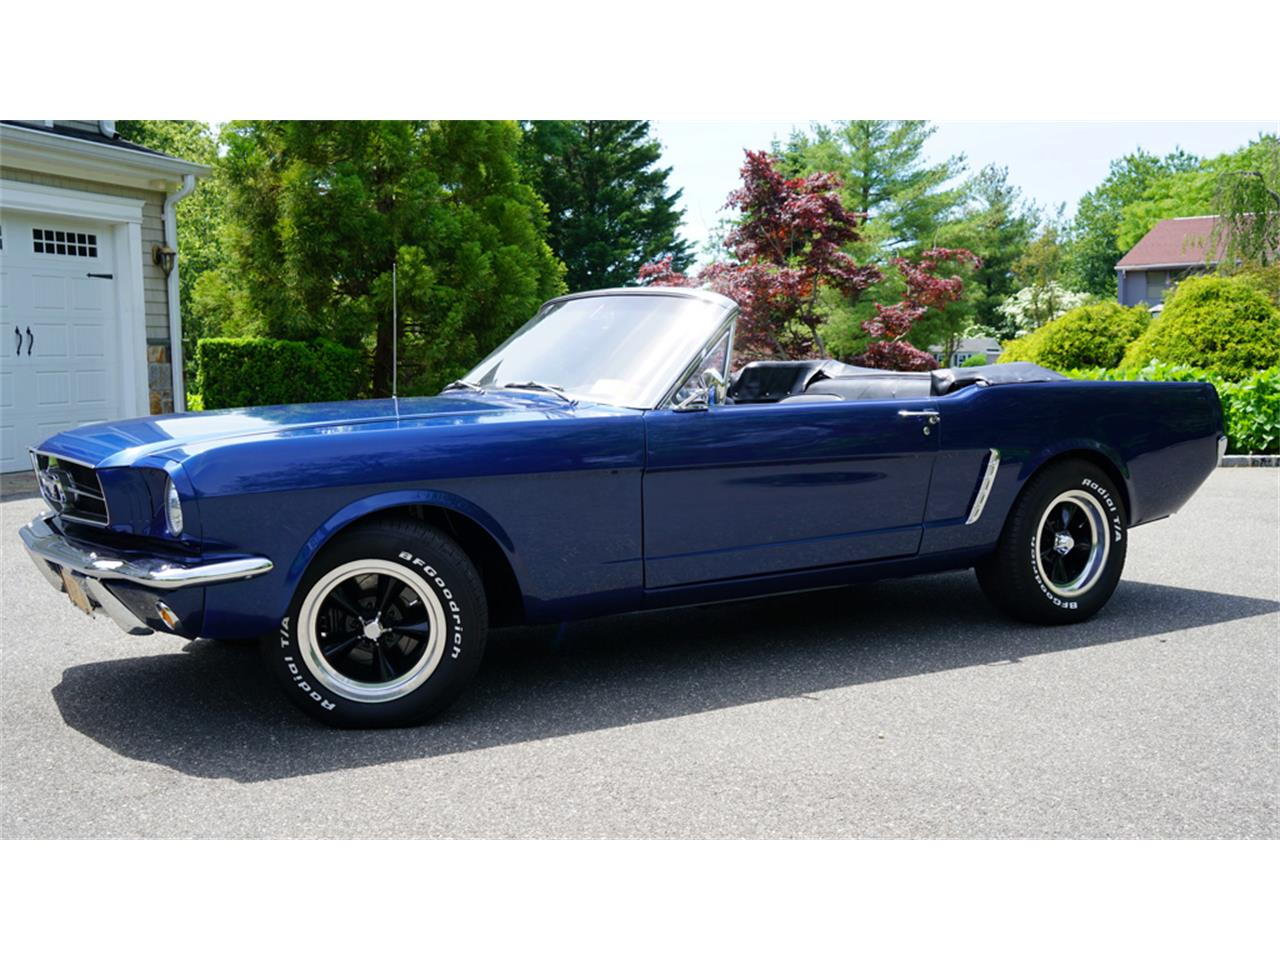 Old Mustangs For Sale >> 1965 Ford Mustang For Sale Classiccars Com Cc 1228004